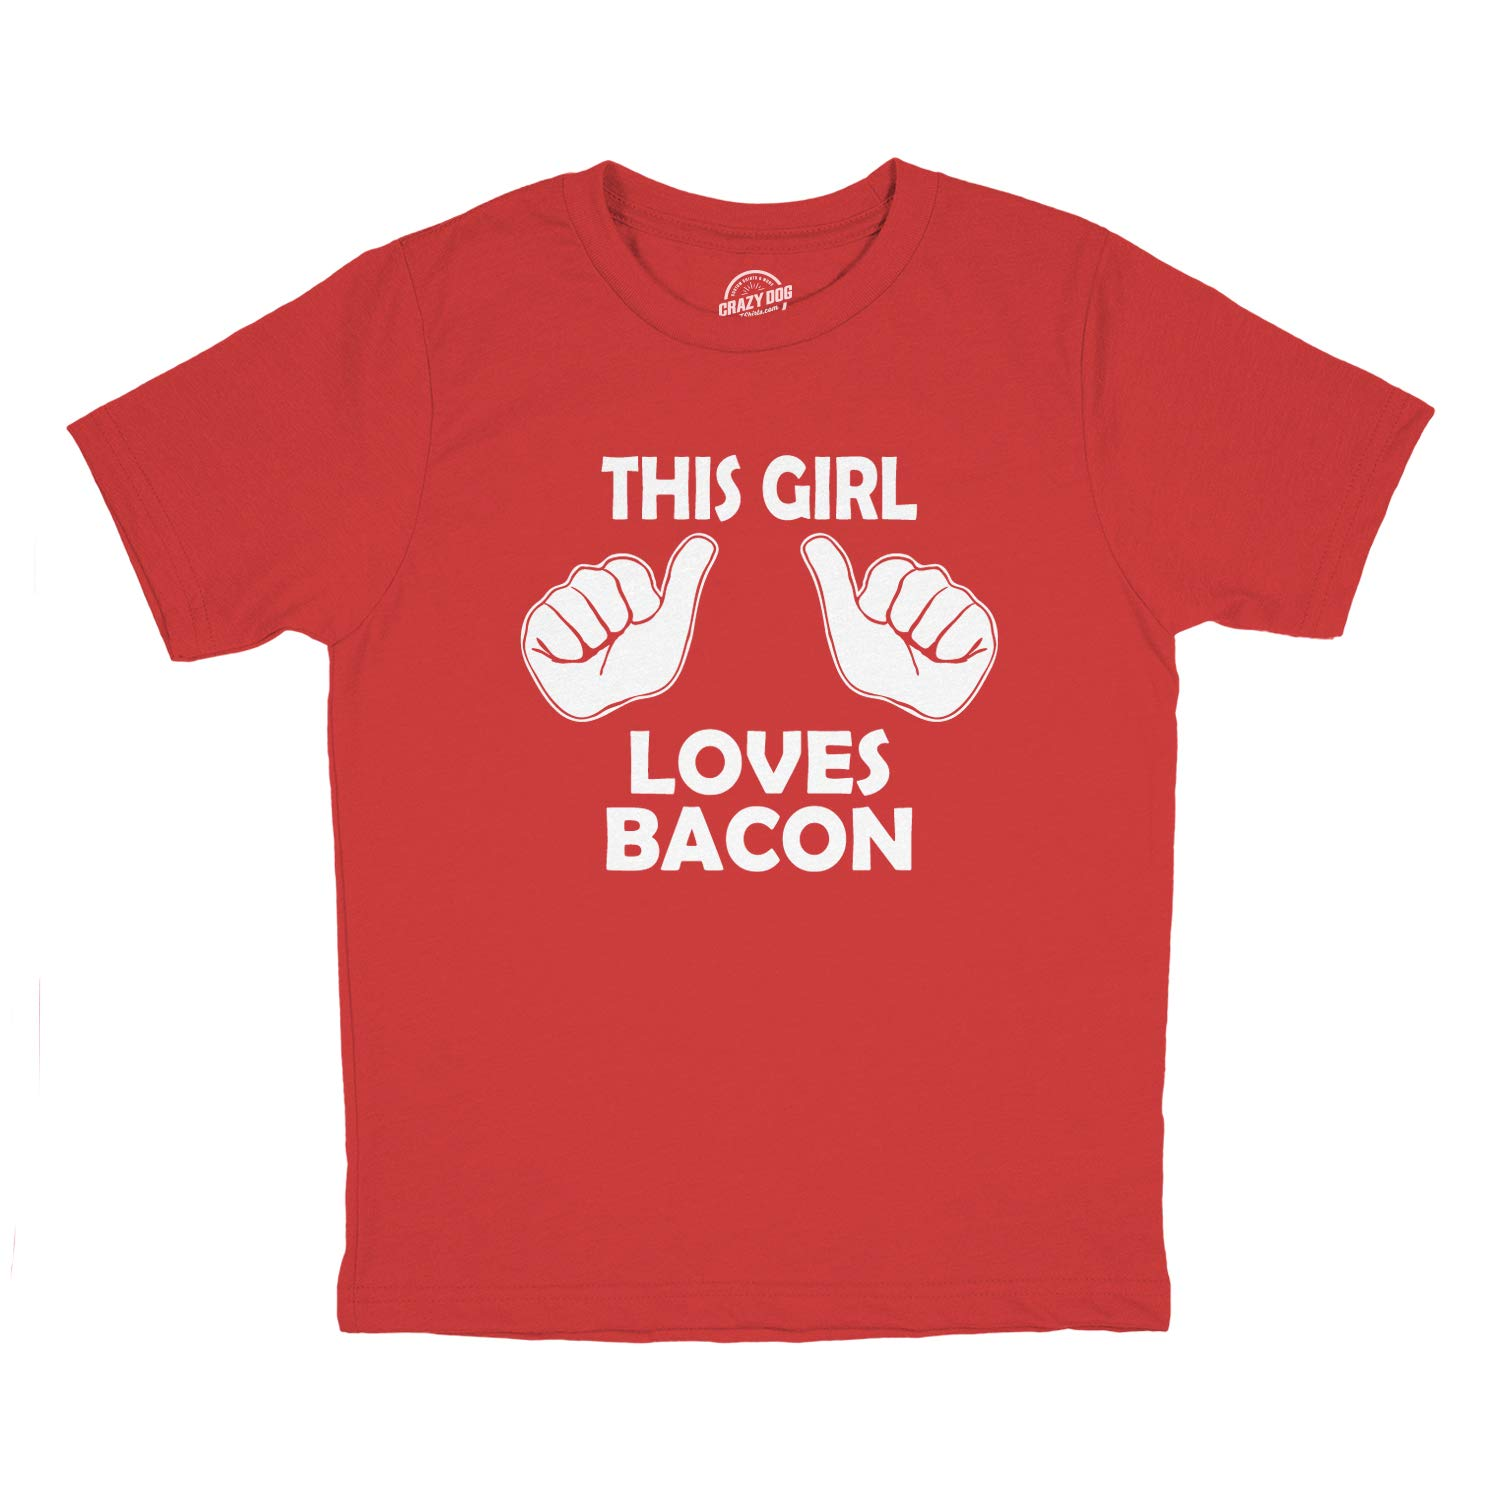 Kids This Girl Loves Bacon T-Shirt Funny Youth Shirt For Girls